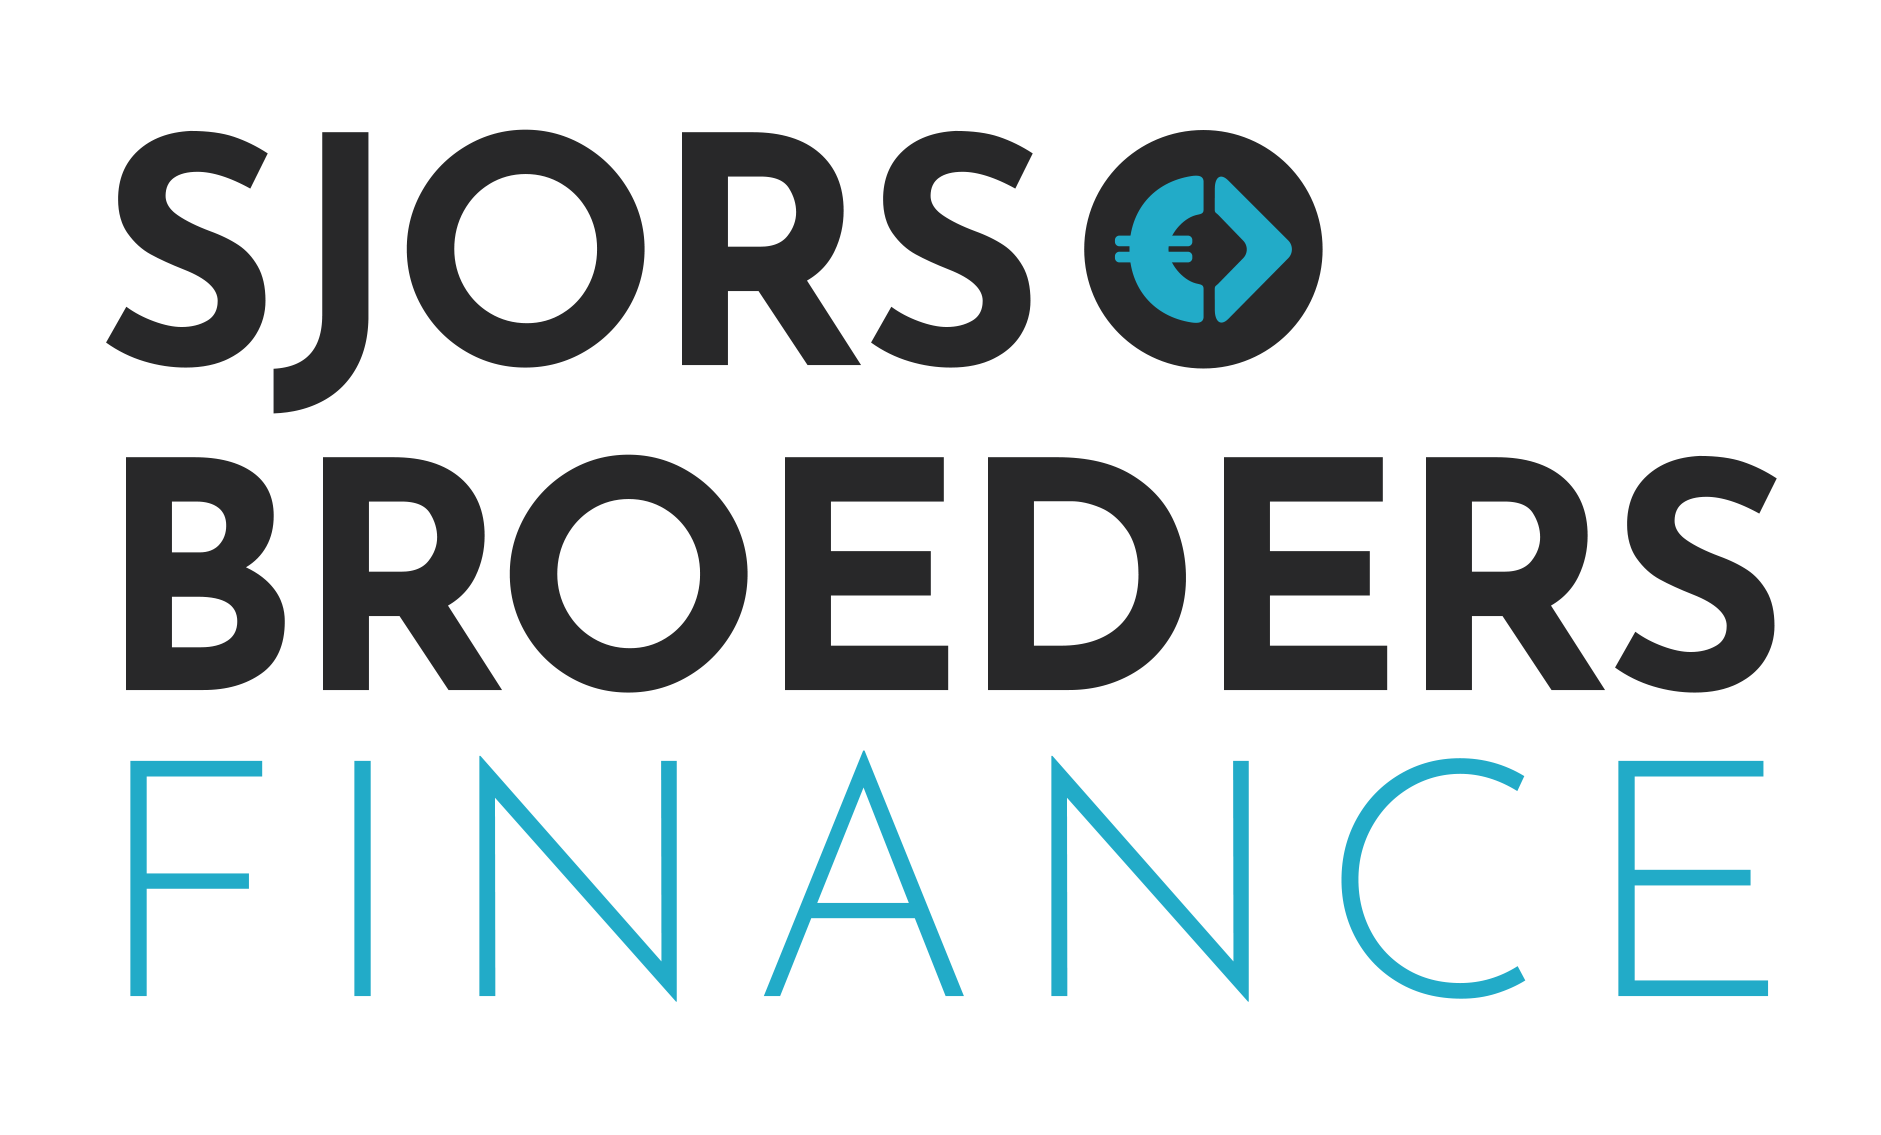 Sjors Broeders Finance